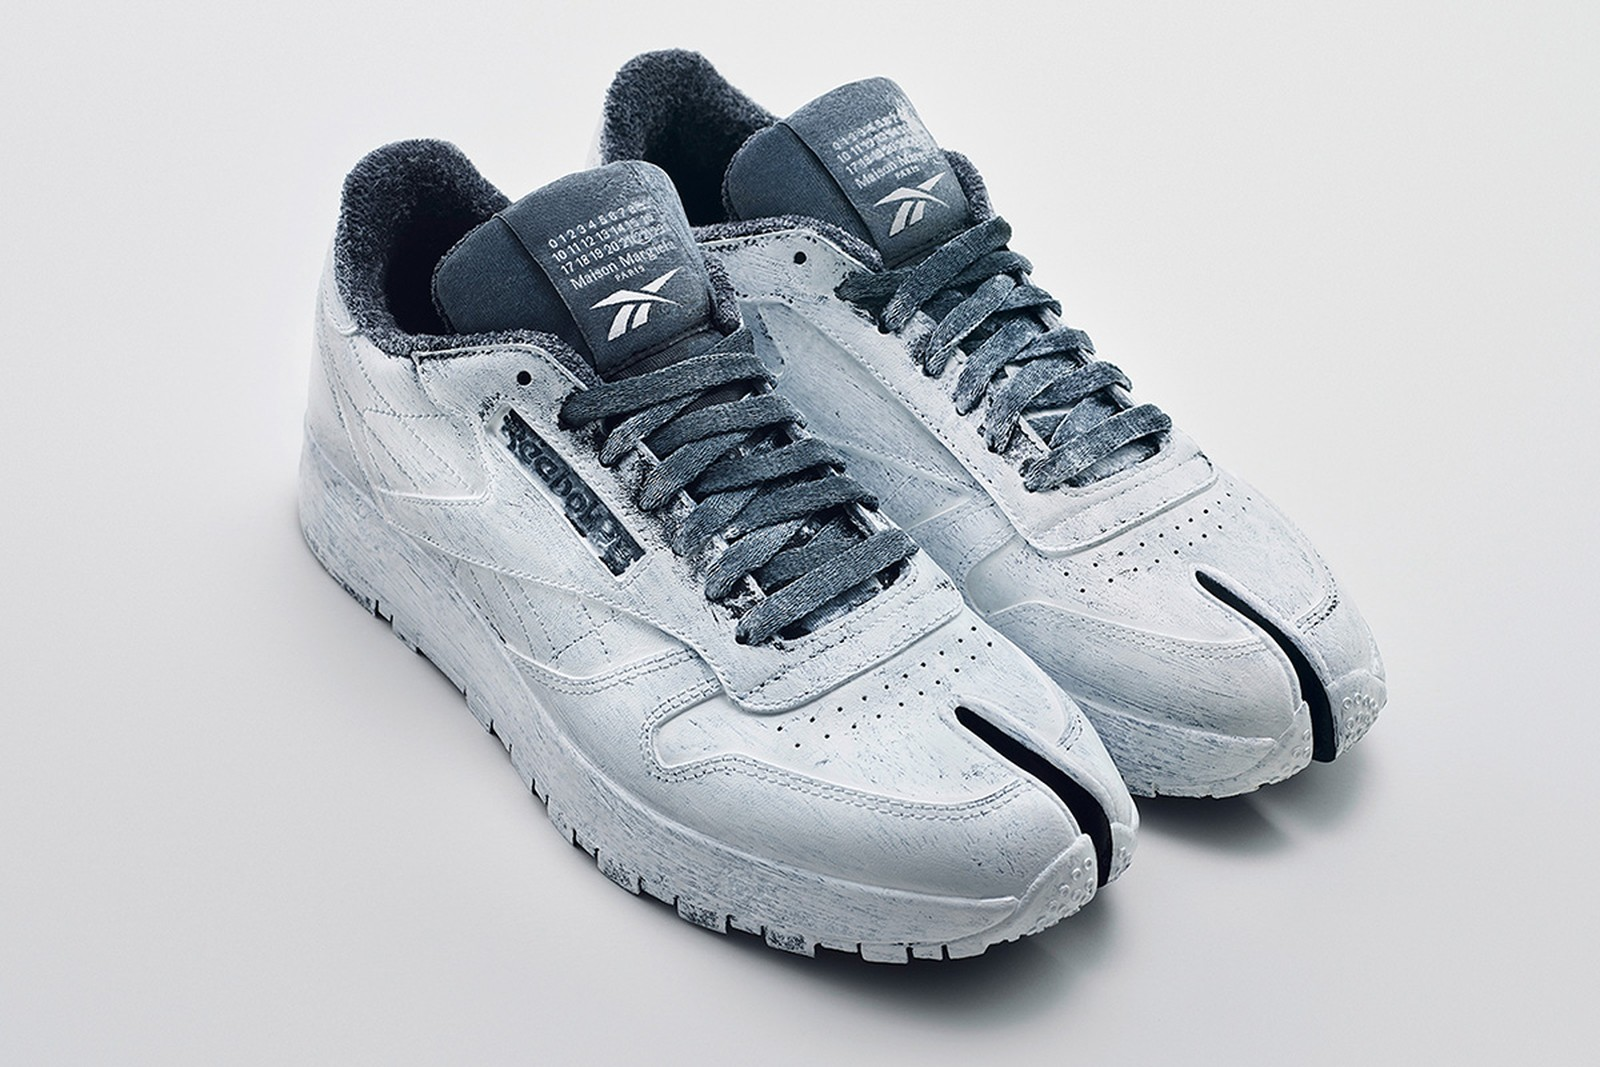 Maison Margiela x Reebok CLassic Leather Tabi